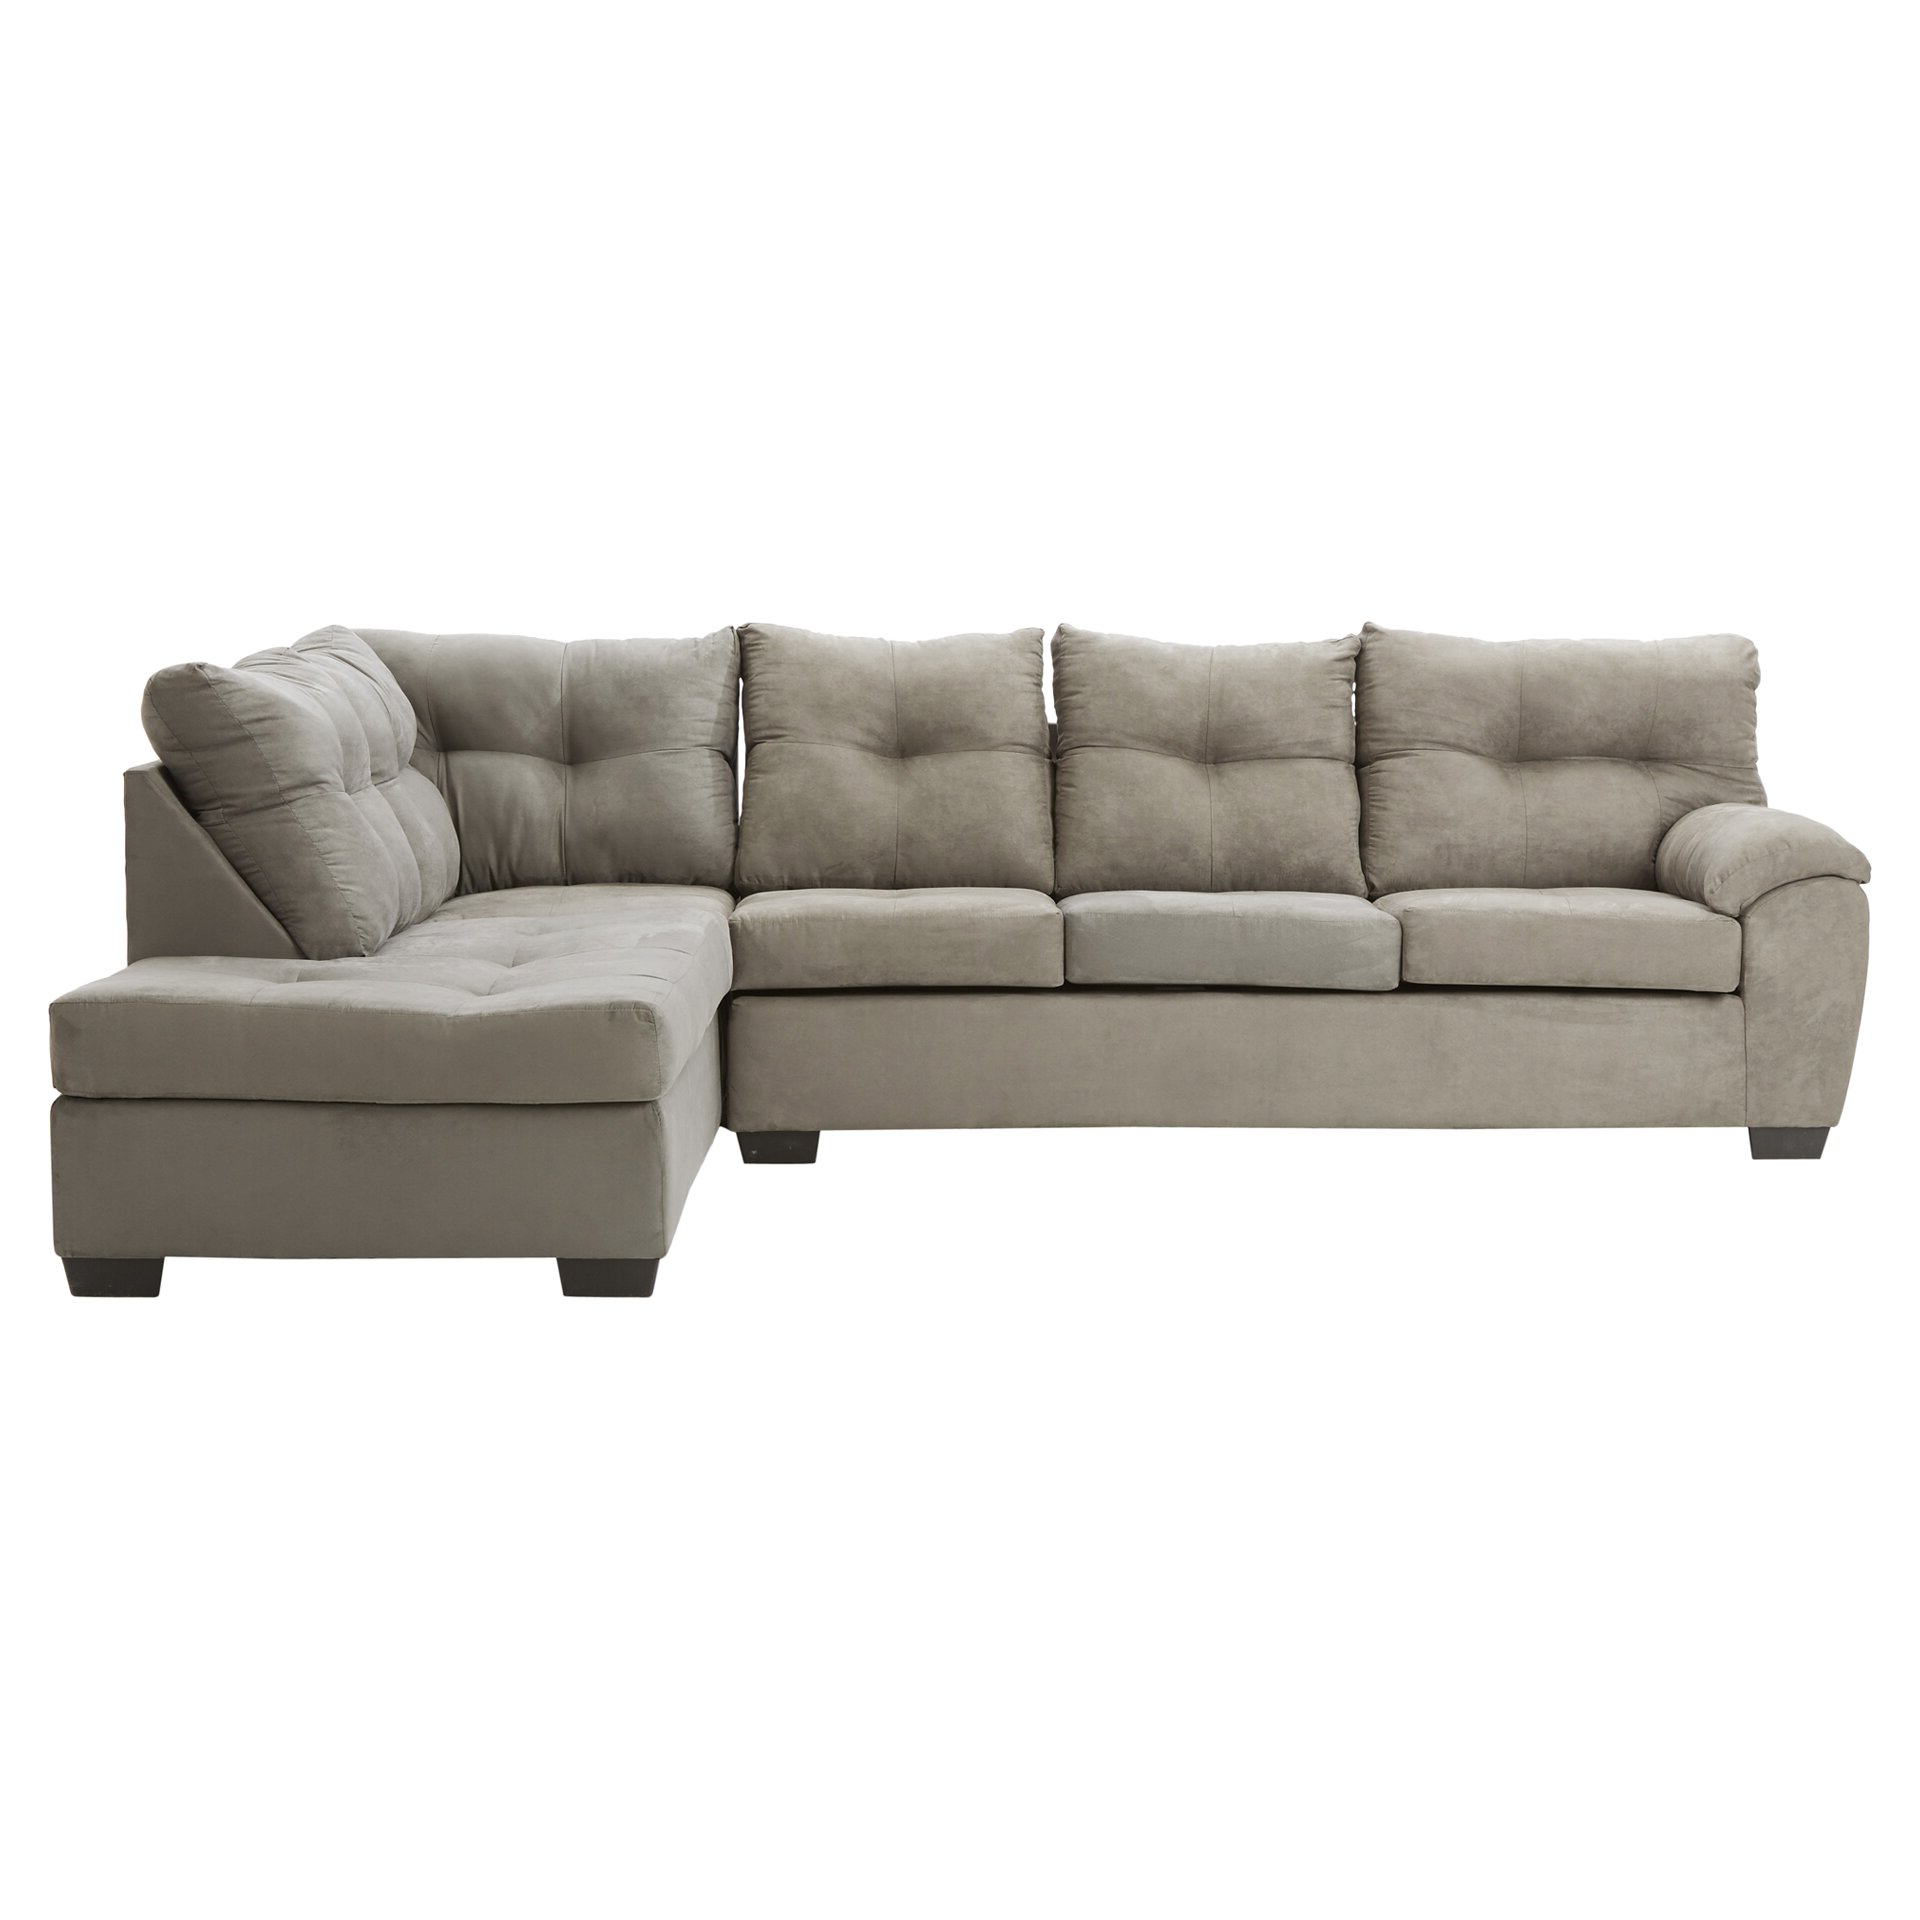 Fashionable Three Posts Camden Right Hand Facing Sectional & Reviews Regarding Kiefer Right Facing Sectional Sofas (View 16 of 25)